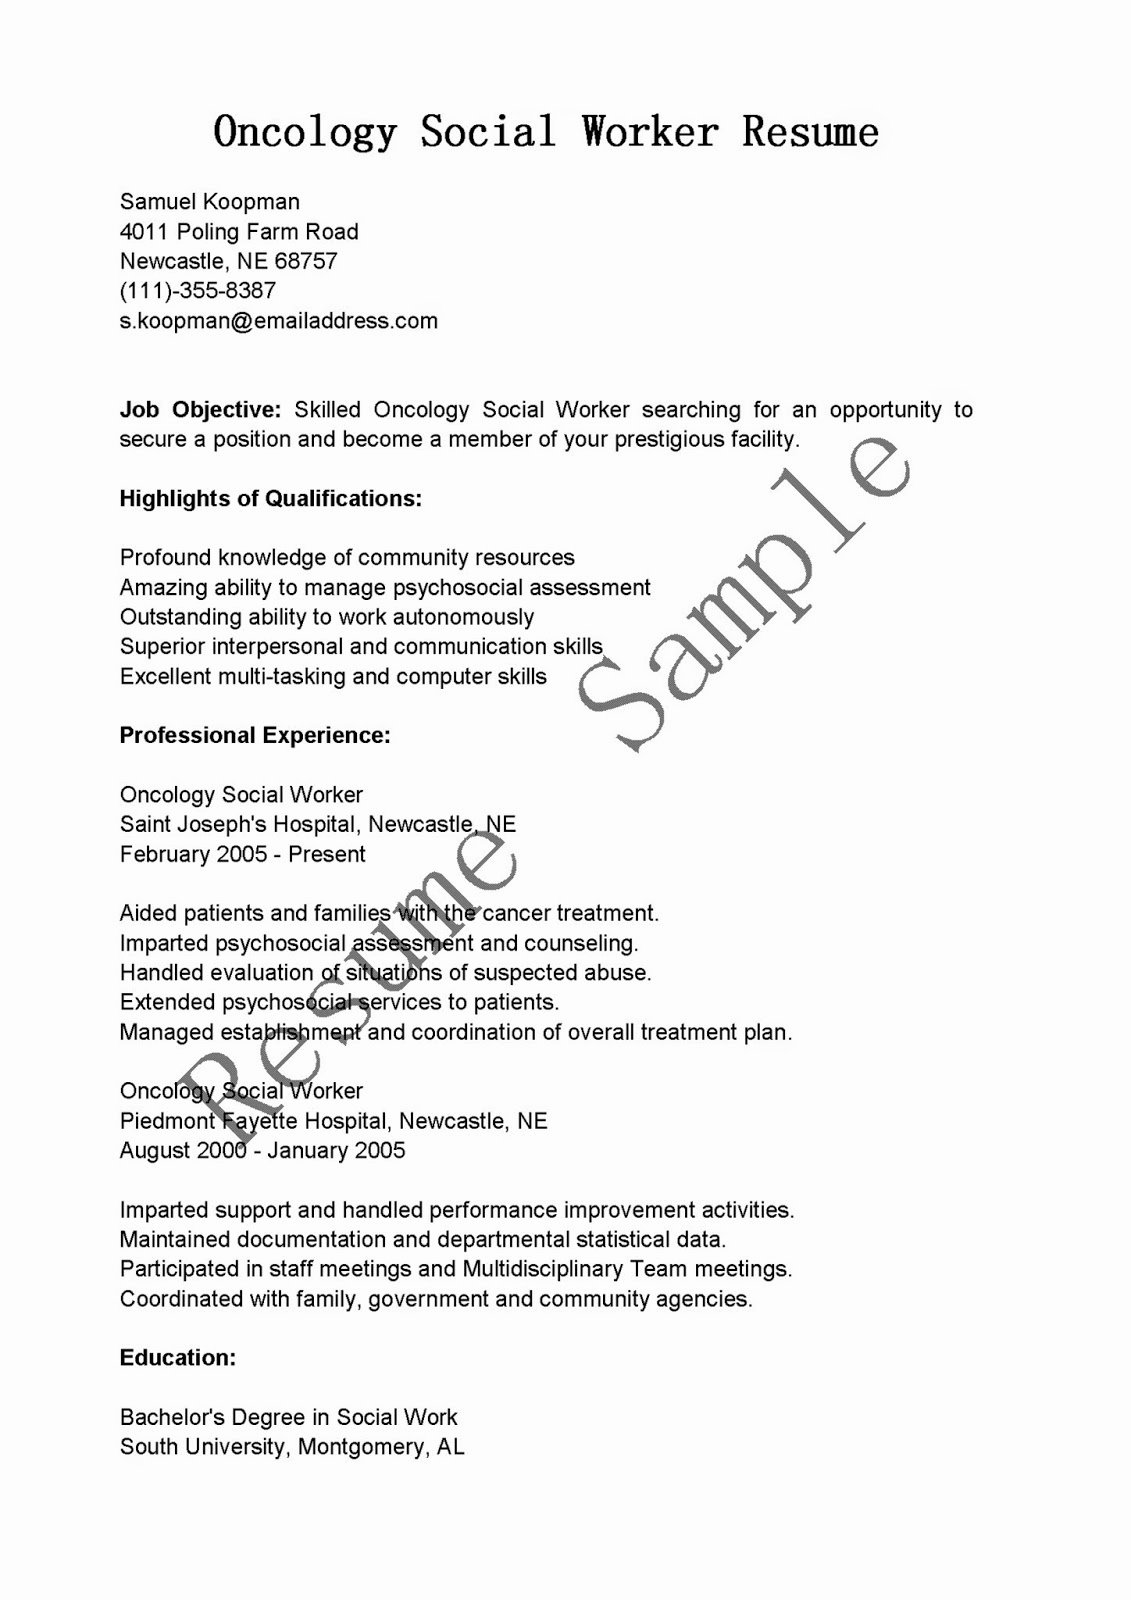 Resume Samples Cology social Worker Resume Sample